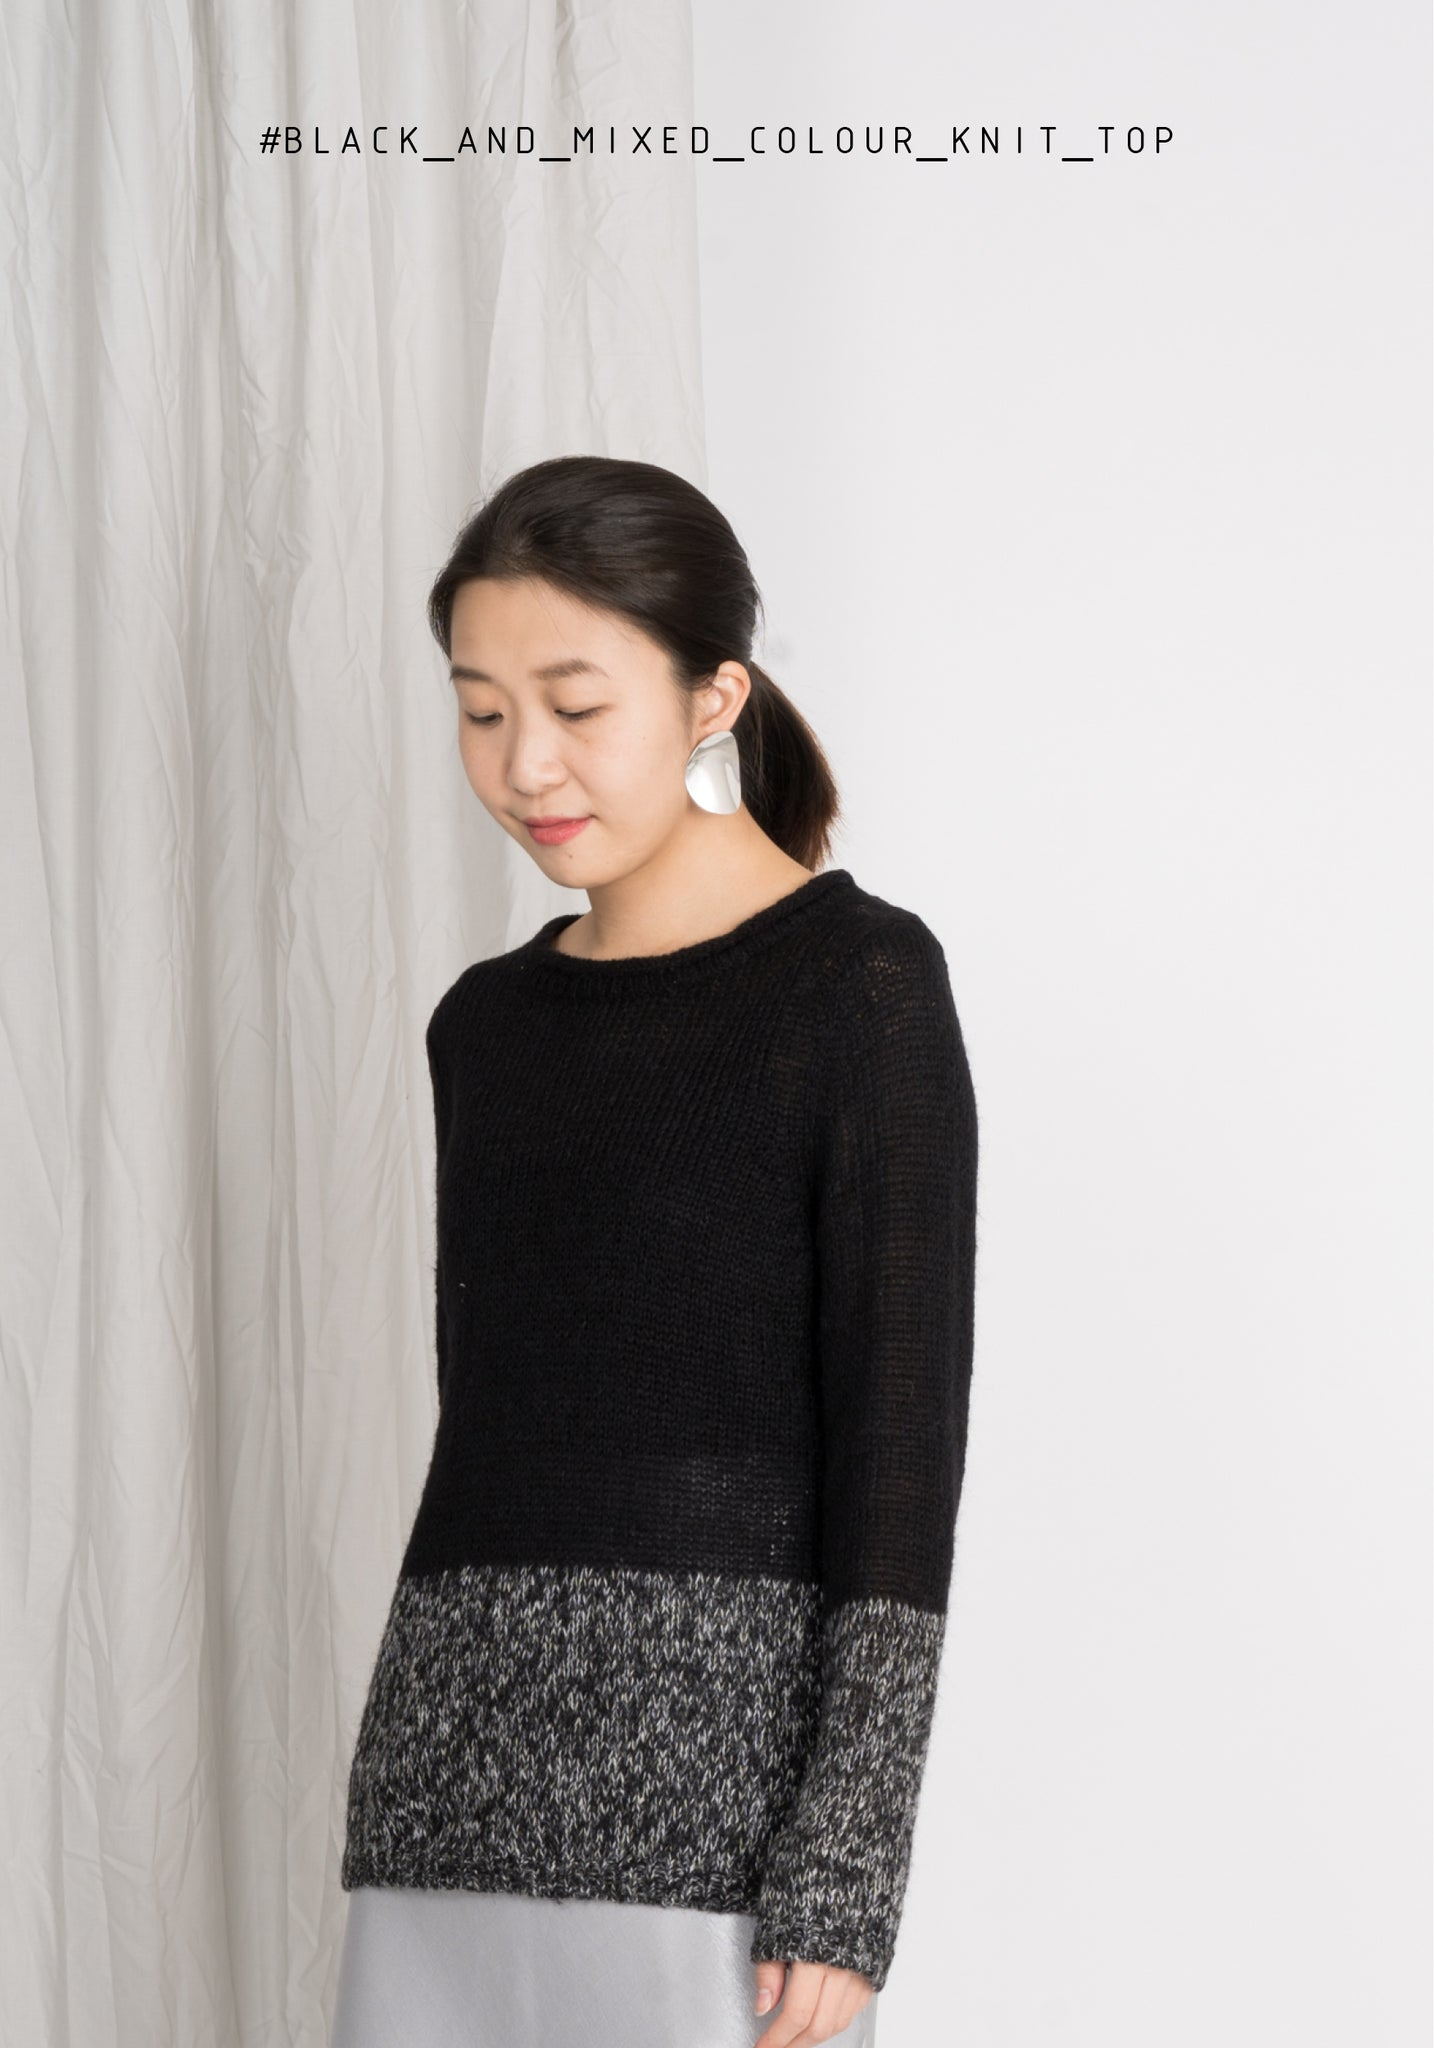 Black and Mixed Colour Knit Top